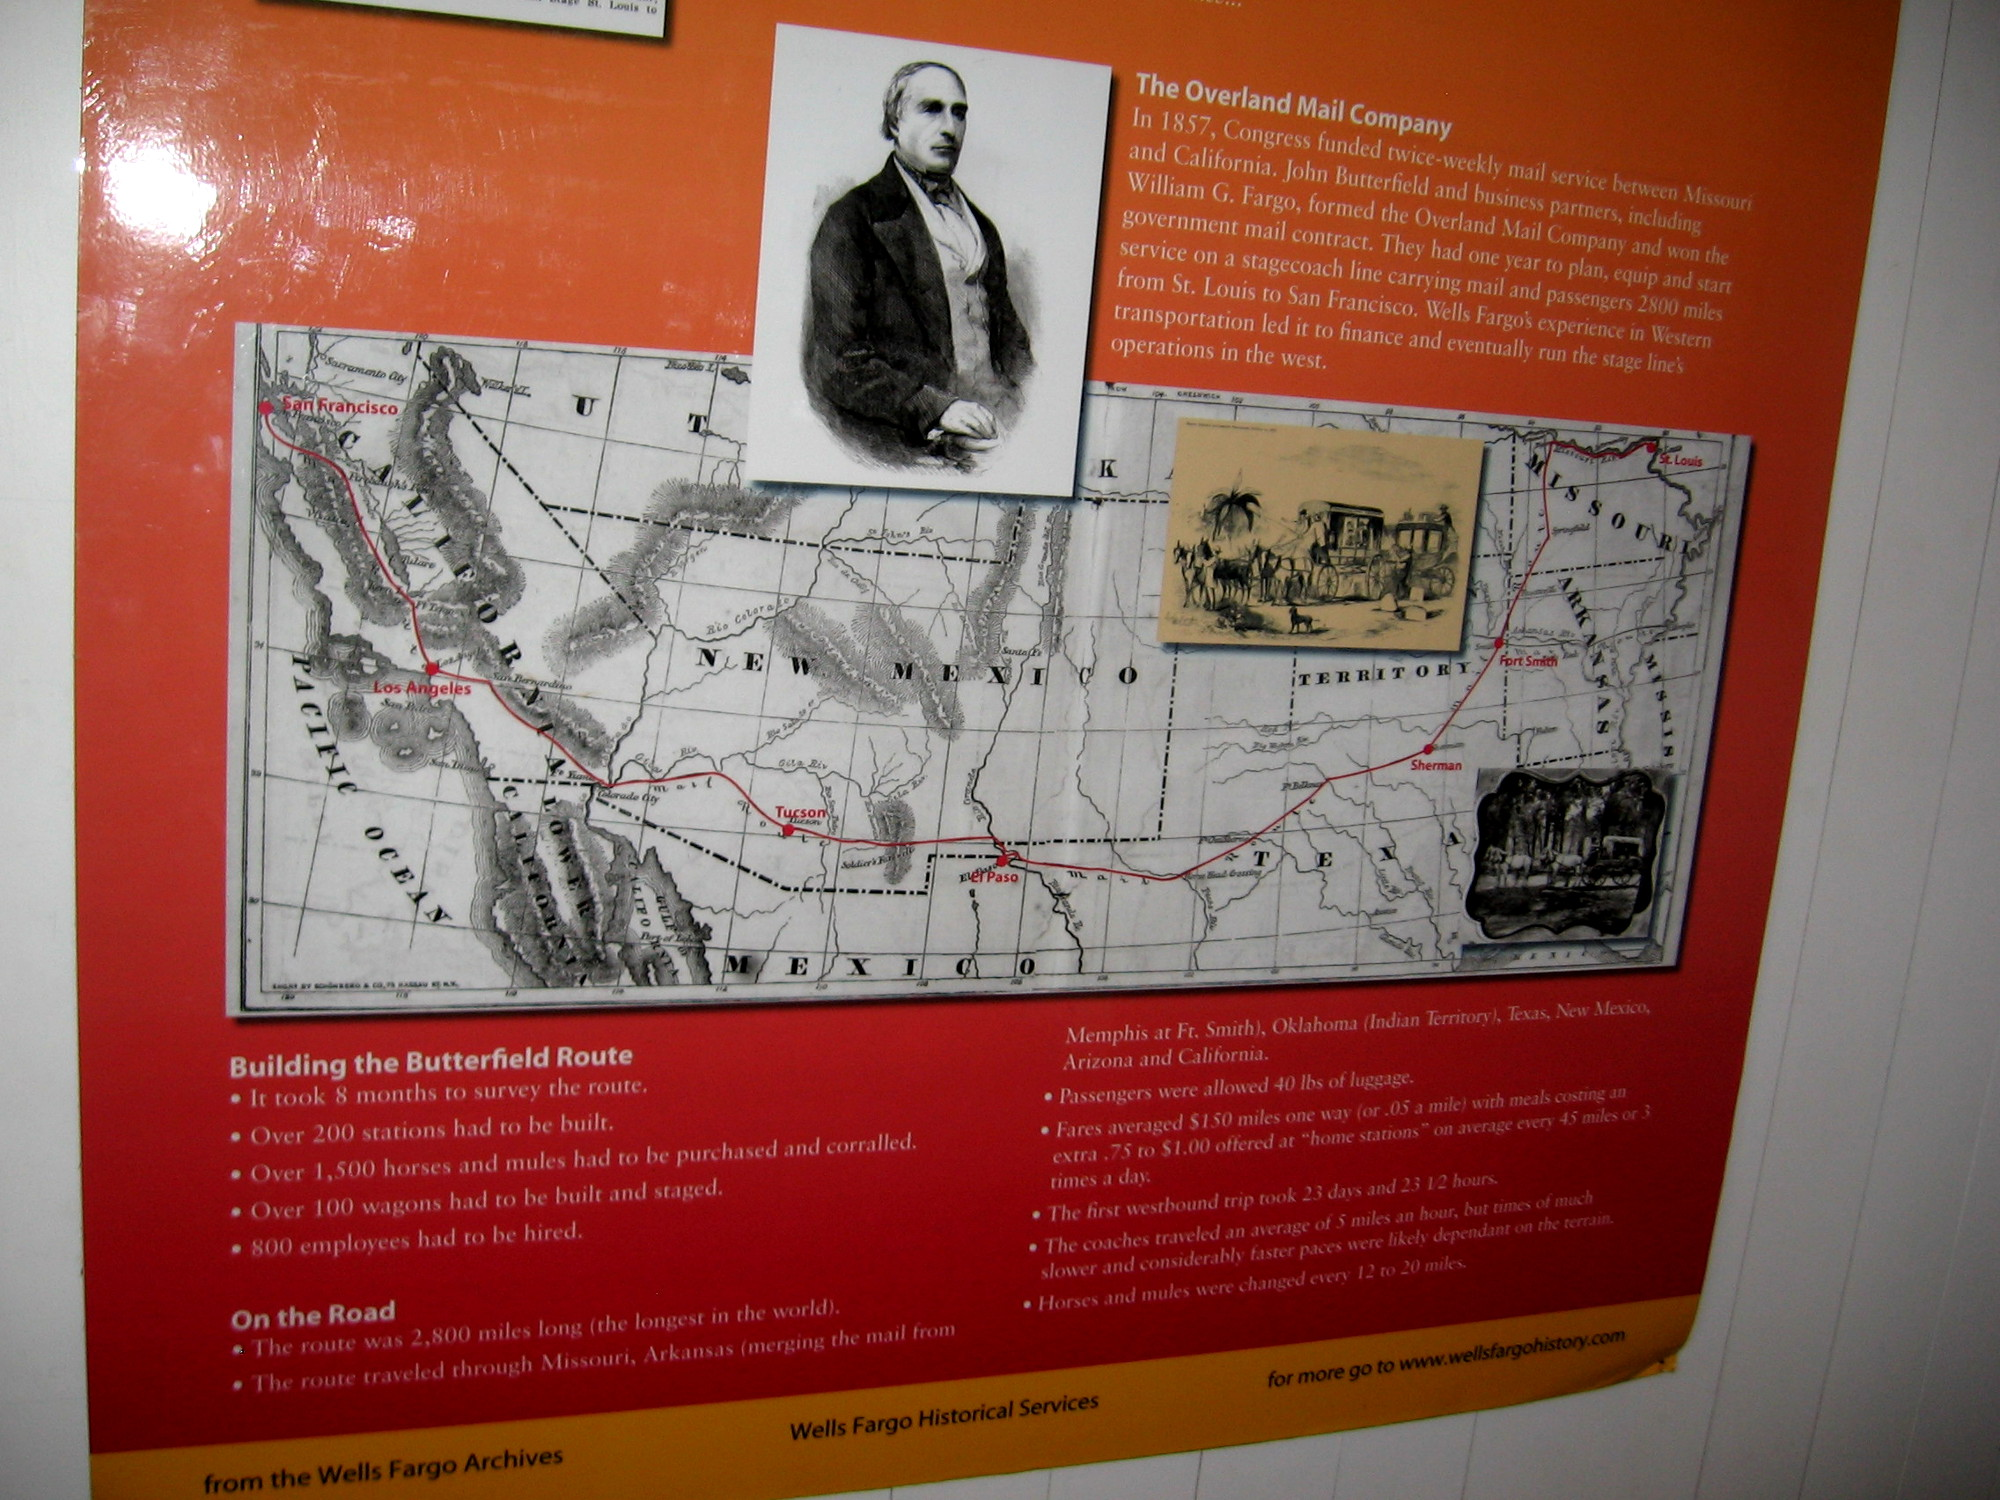 San go history at Old Town's Wells Fargo museum. – Cool ... Wells Fargo Stage Route Map on fargo road map, wells fargo center stage, oxbow route map, butterfield stage line map, mail route map, 1852 wells fargo route map, wells fargo seating views, fargo nd zip code map, wells fargo seating chart interactive, overland trail route map, butterfield stagecoach route map,